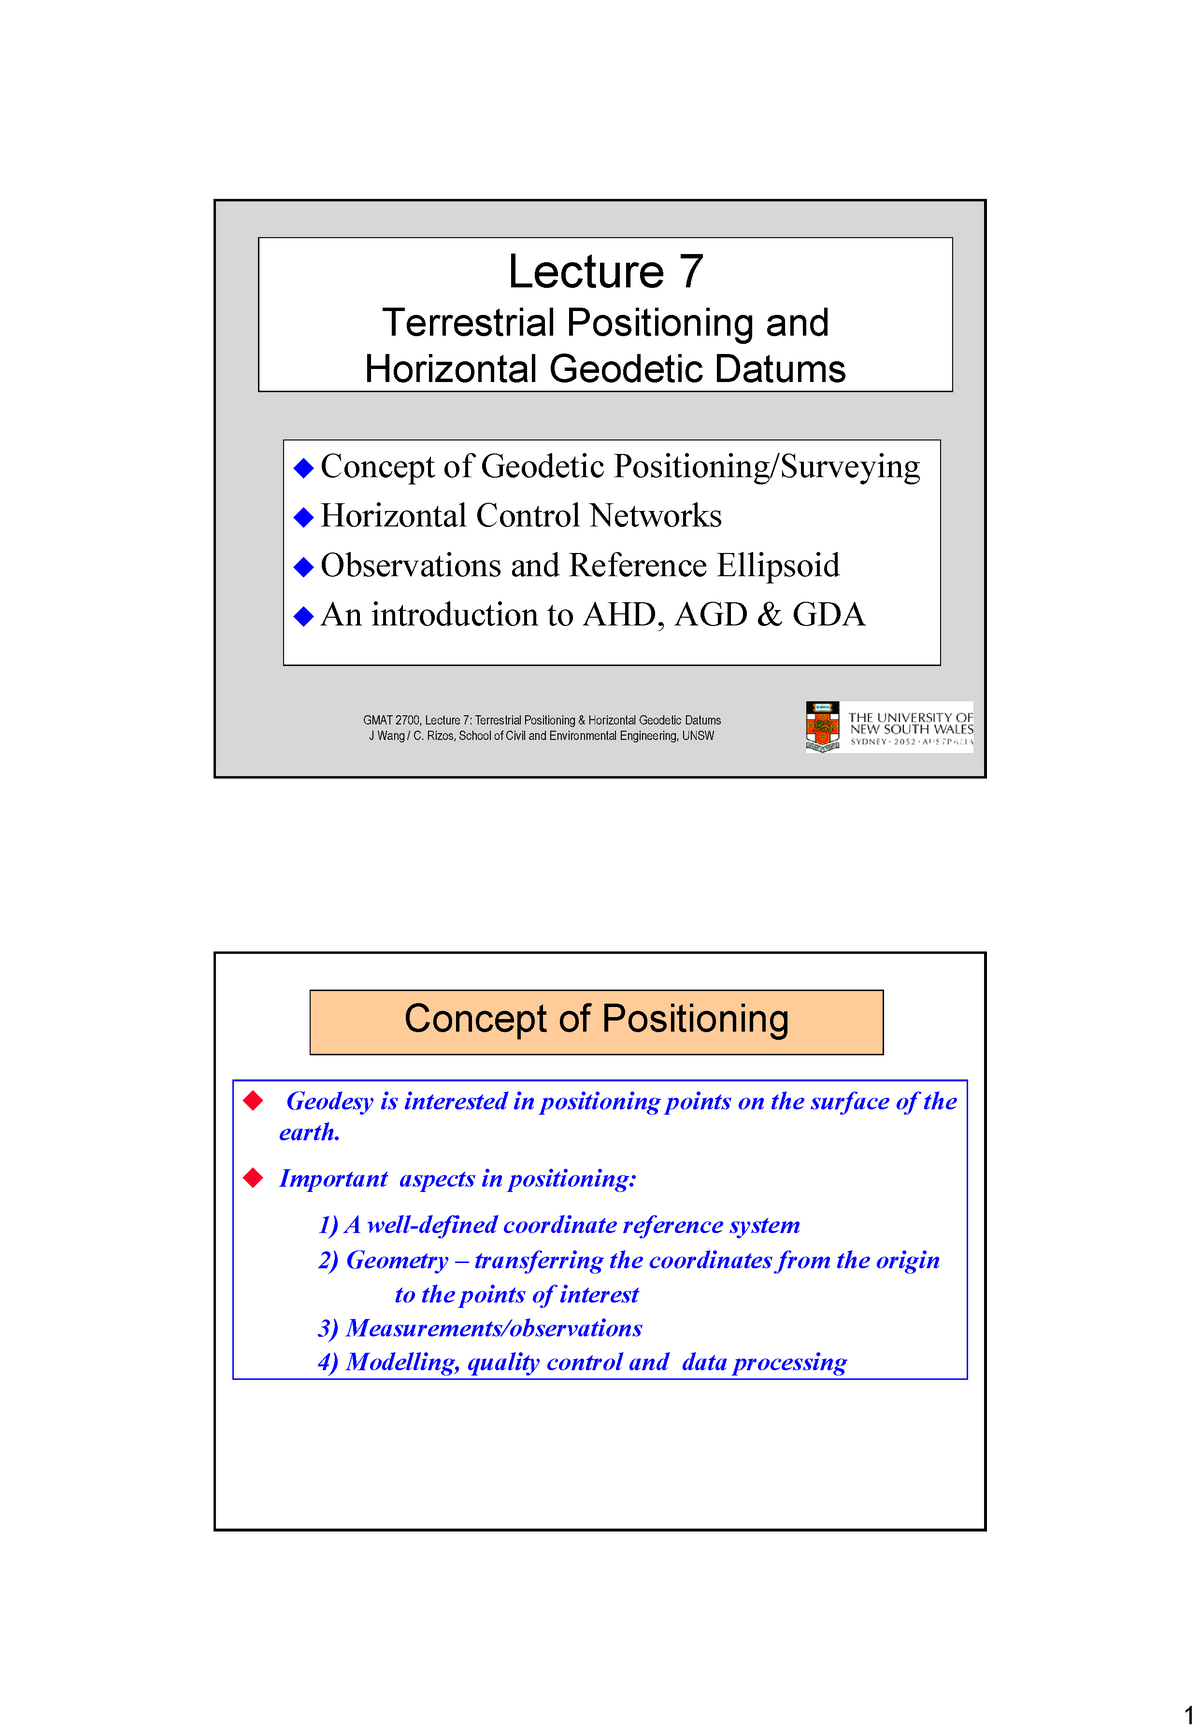 Lecture 7 Terrestial Positioning and Horizontal Geodetic